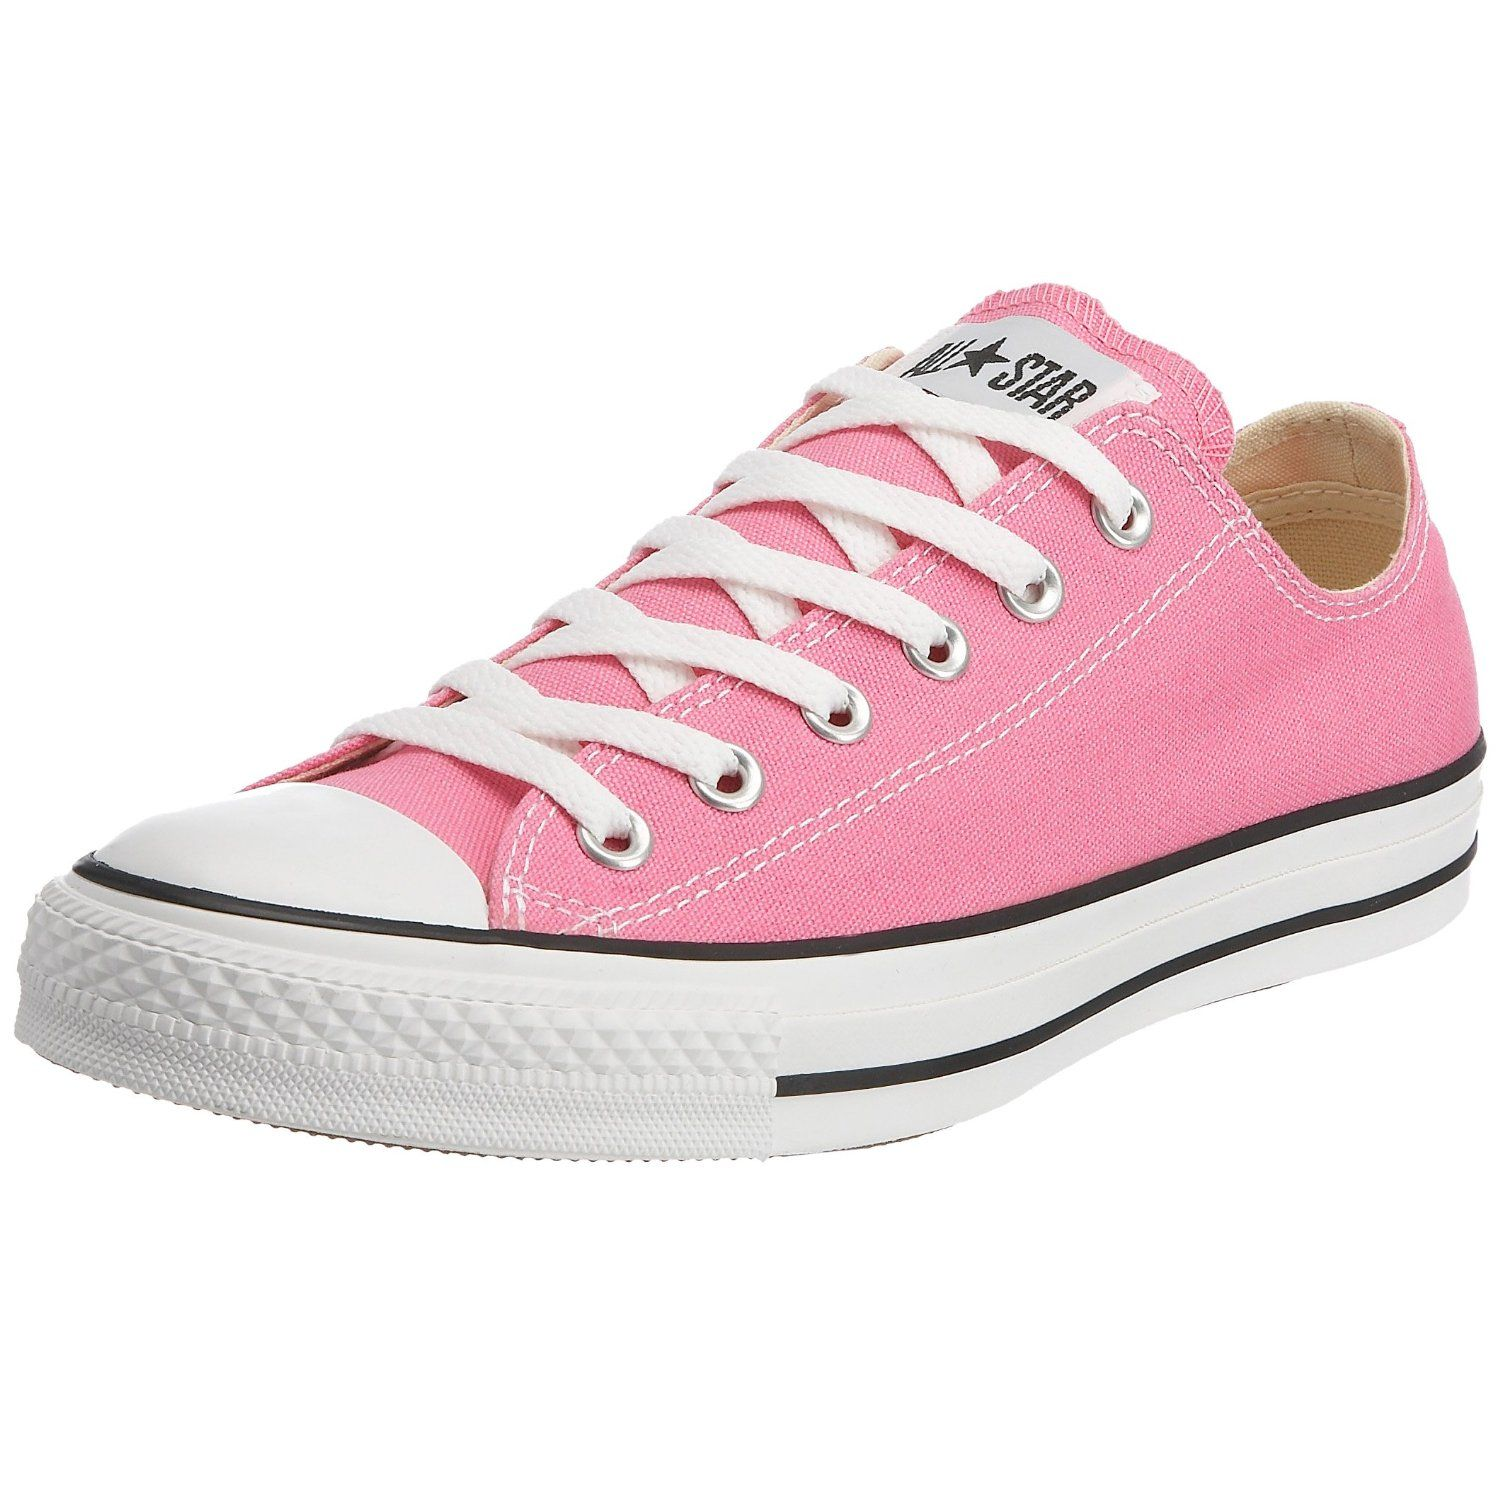 converse as ox can nvy m9697